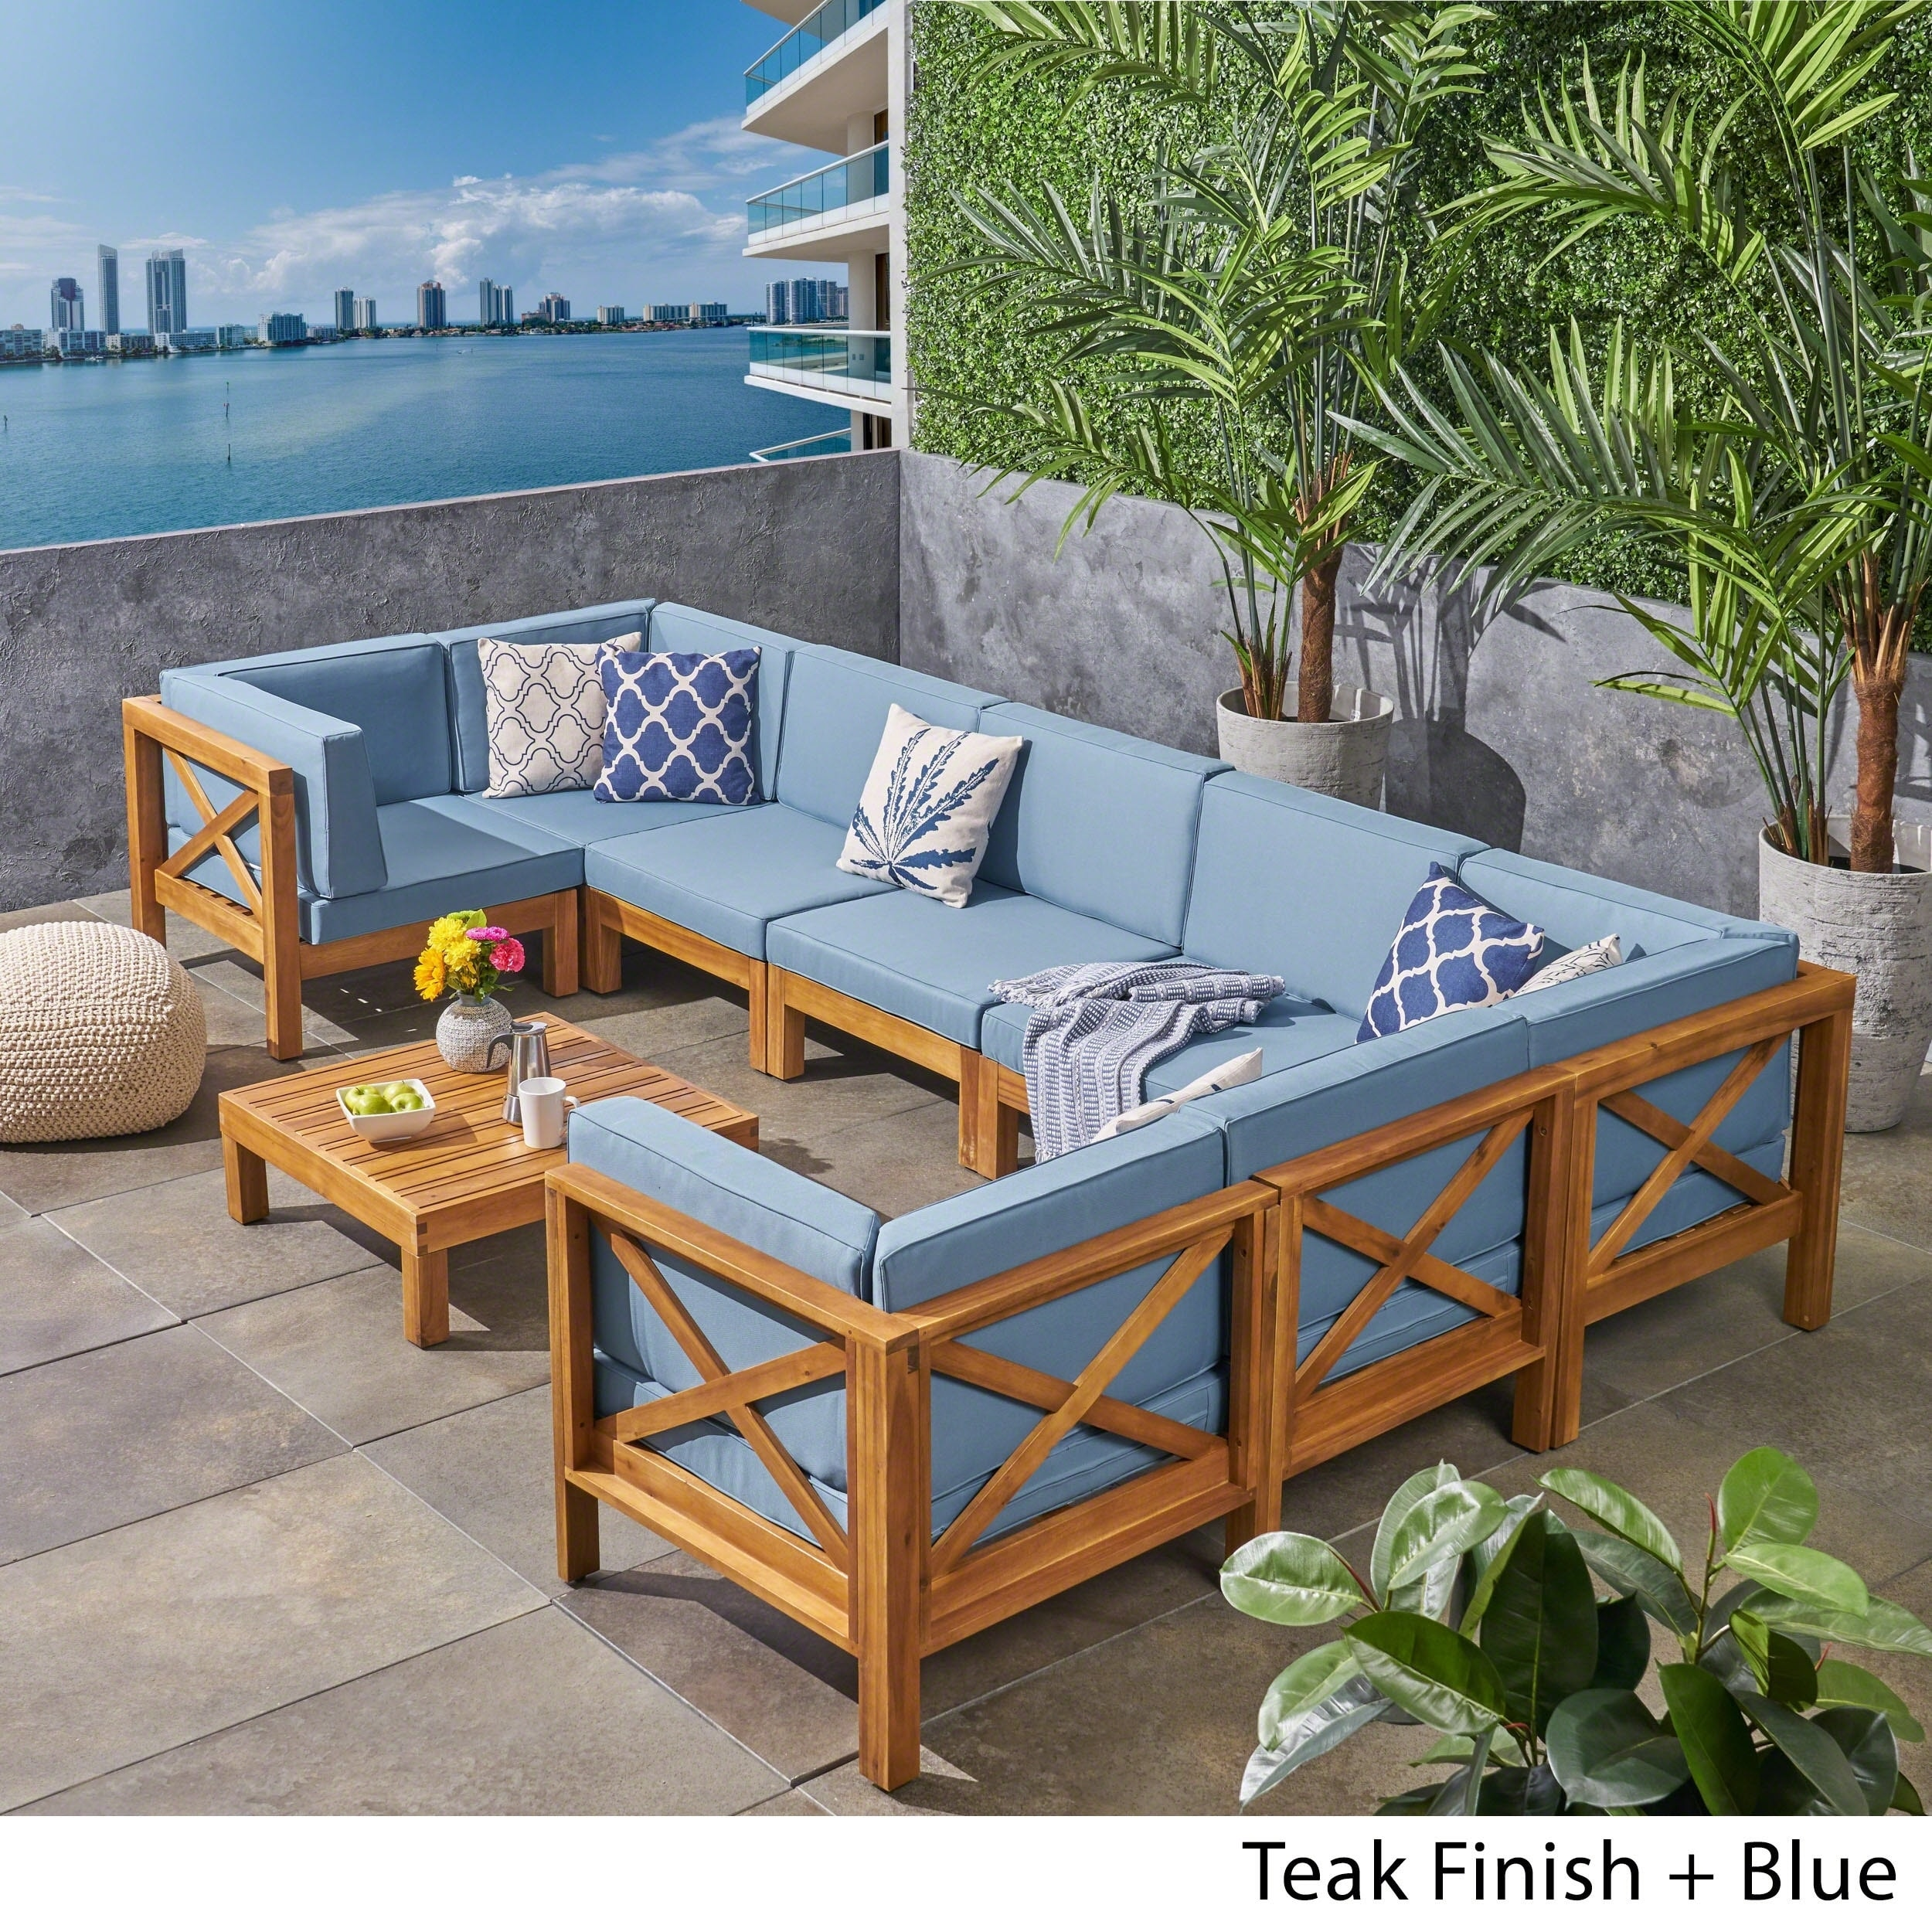 Brava Outdoor 8 Seater Acacia Wood Sectional Sofa Set By Christopher Knight Home On Free Shipping Today 23139527 Grey Dark